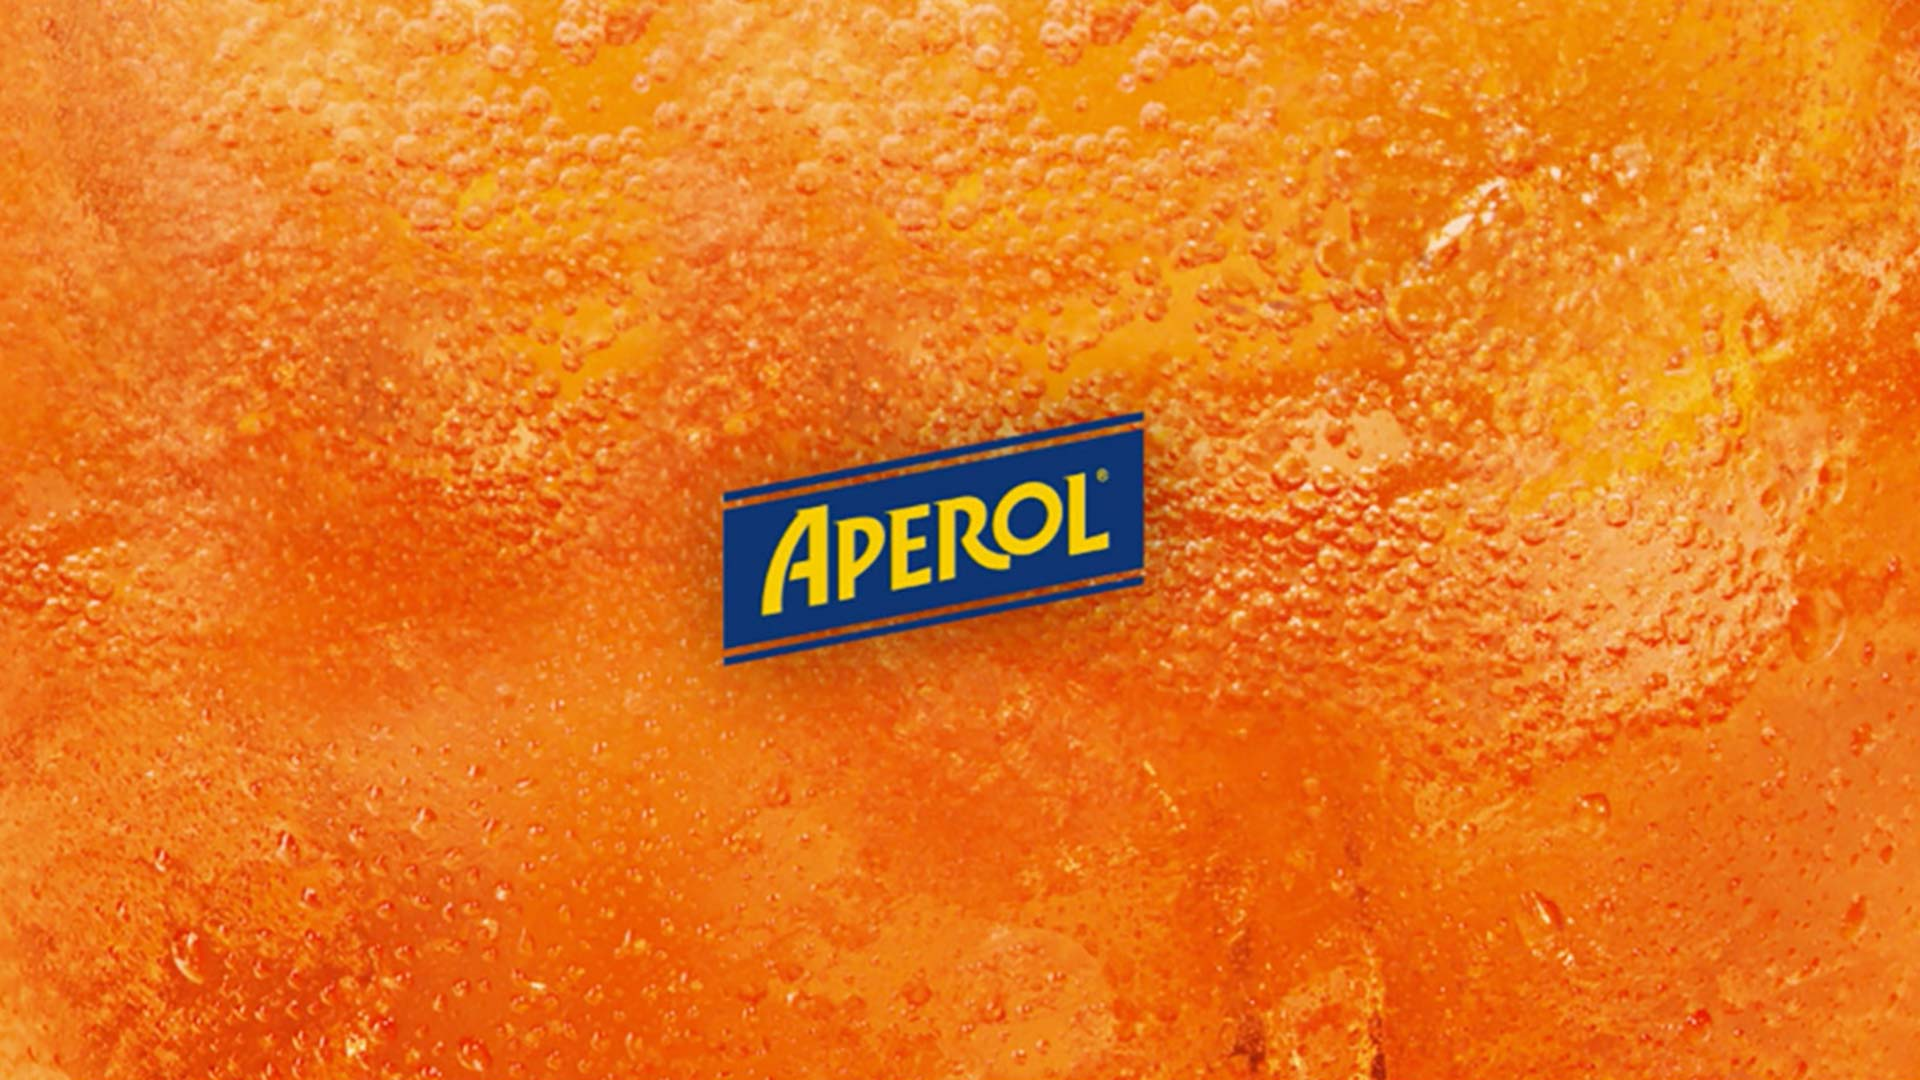 Aperol Case Study Thumbnail The Many